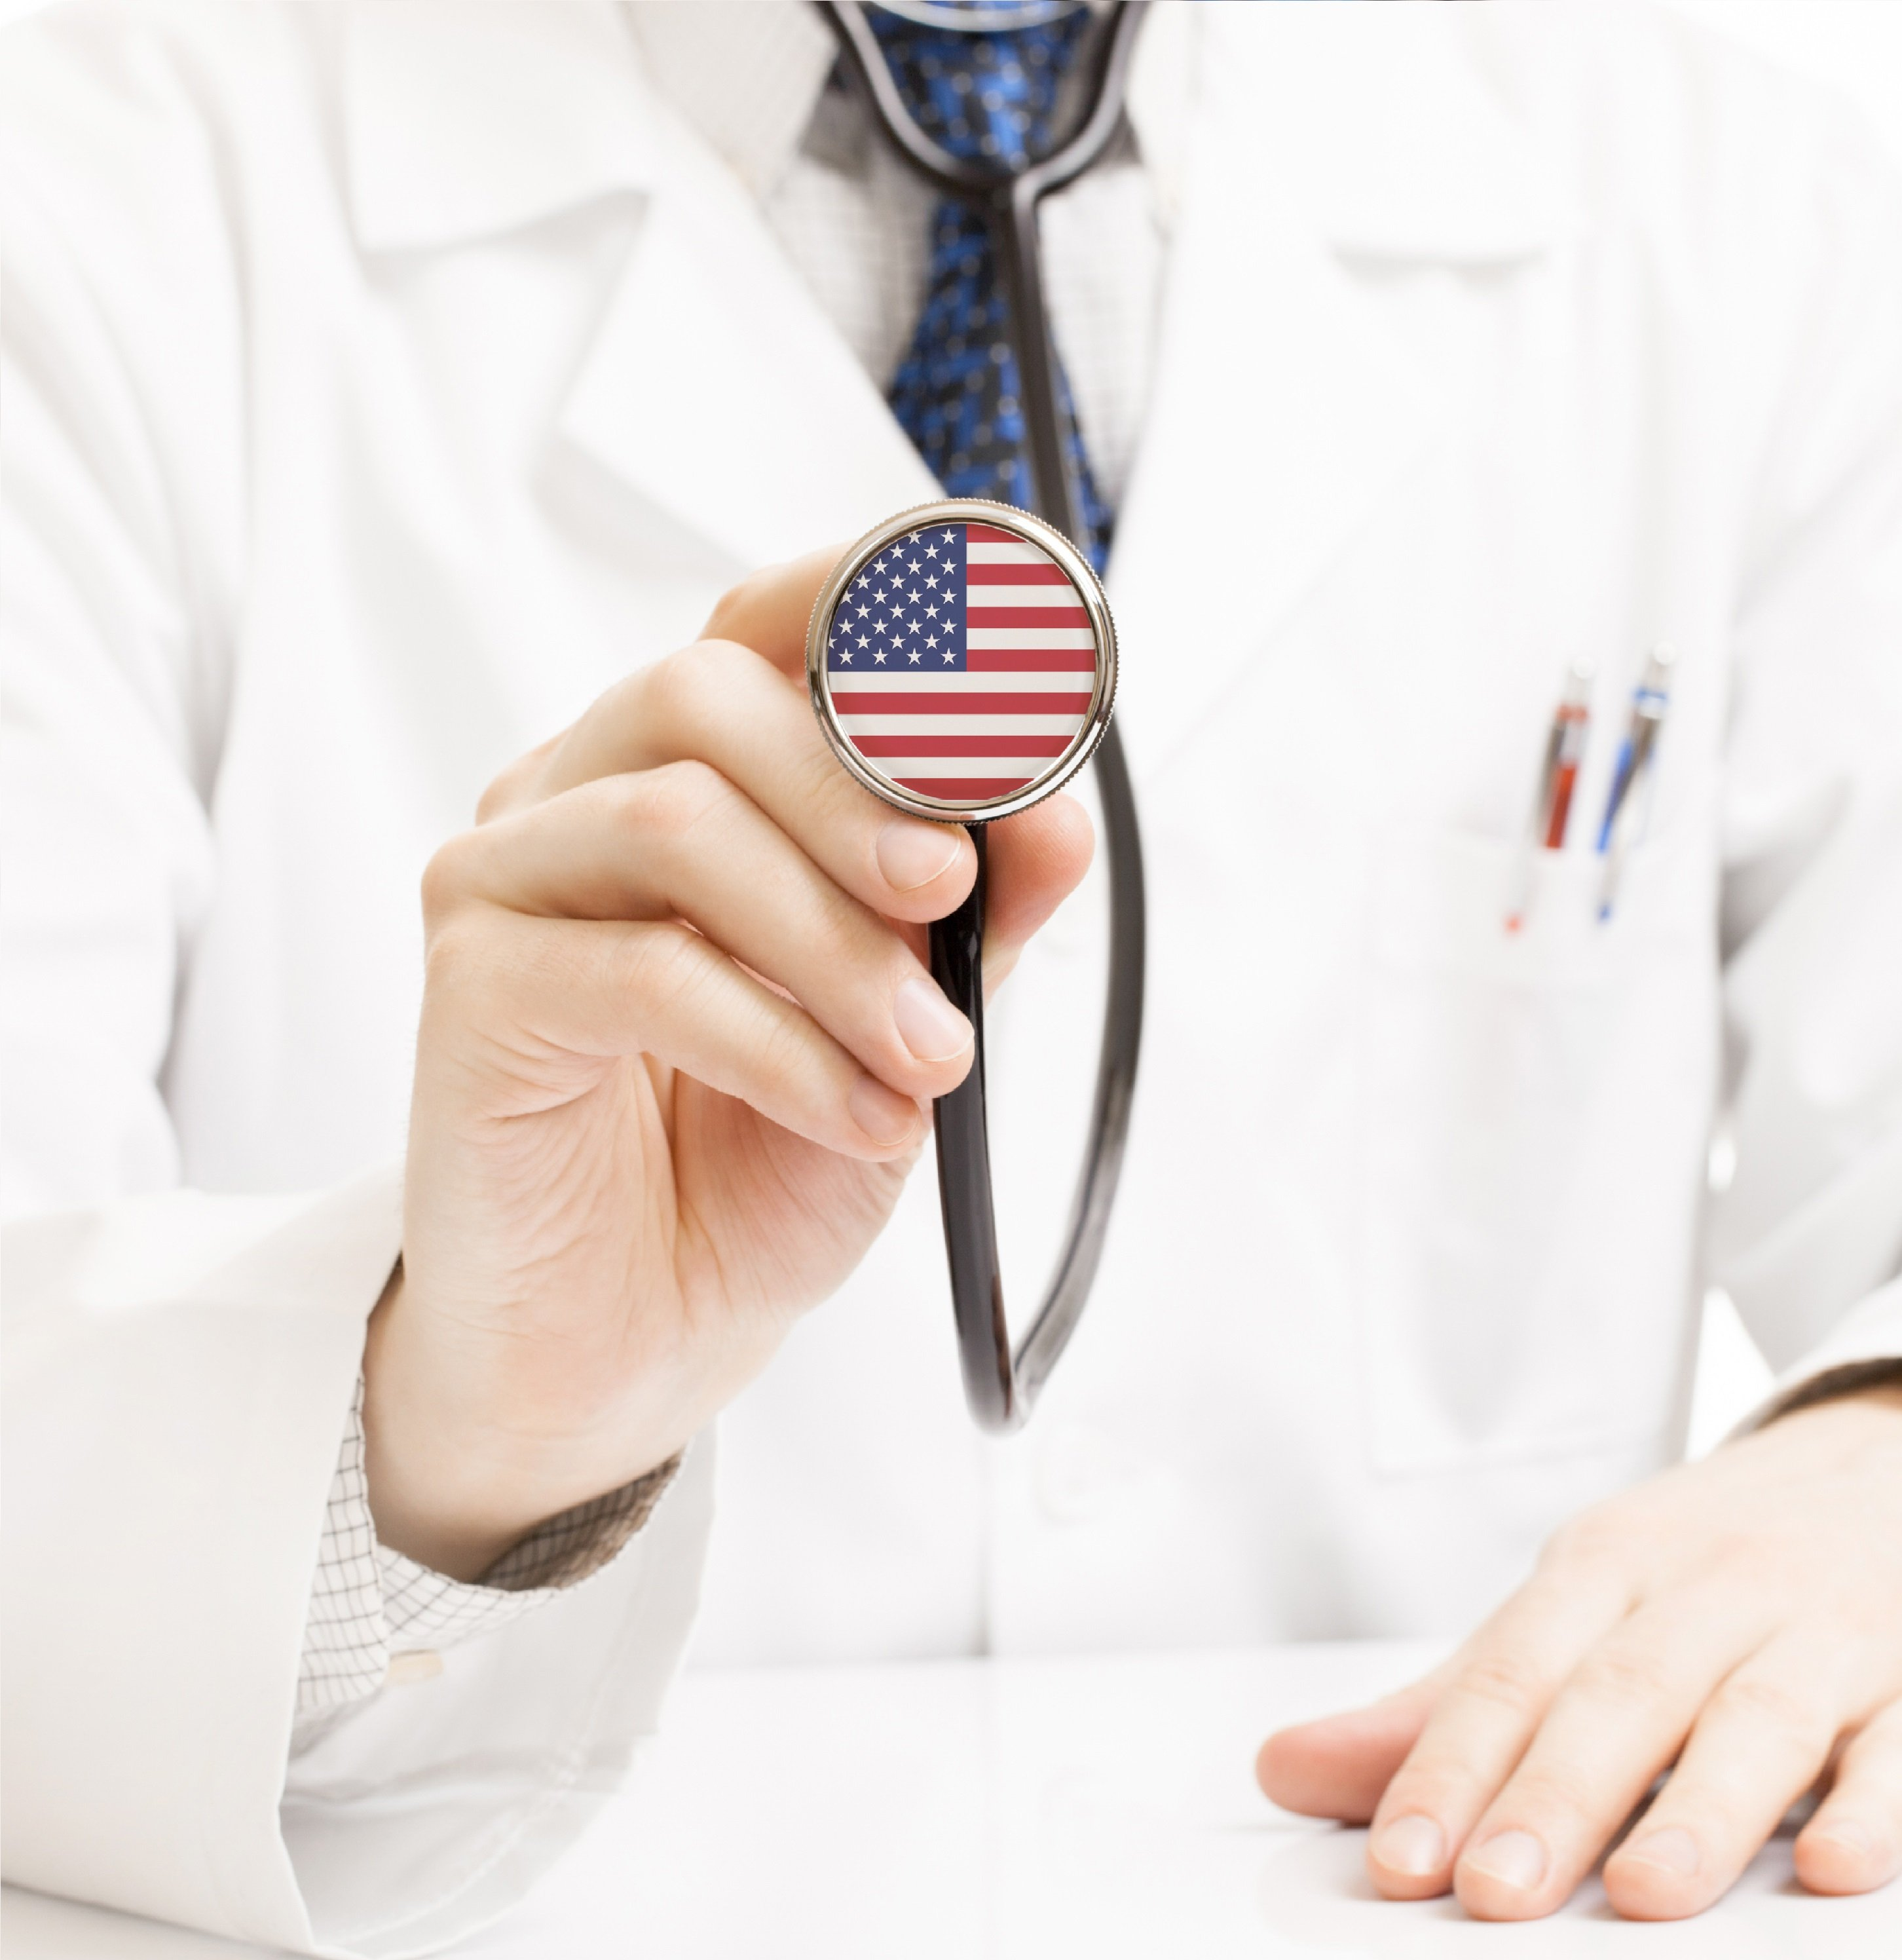 doctor holding an american flag stethascope